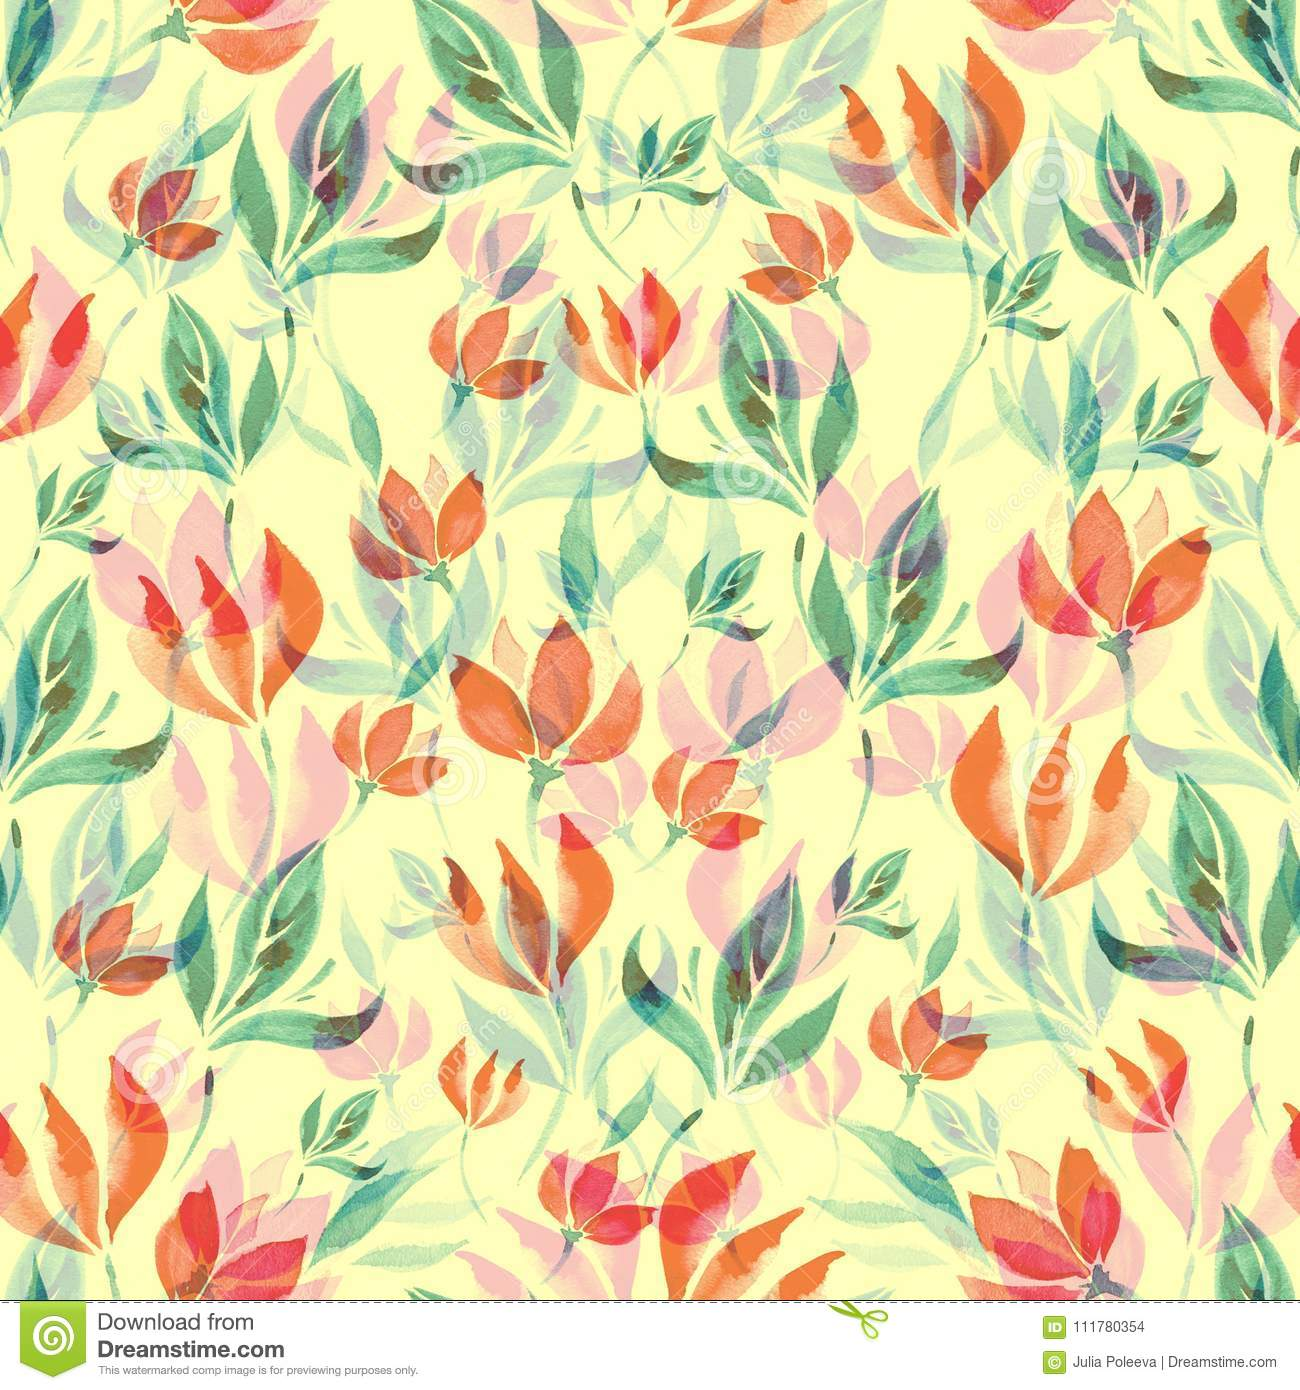 Seamless watercolor pattern of red flowers and turquoise leaves on a yellow background.